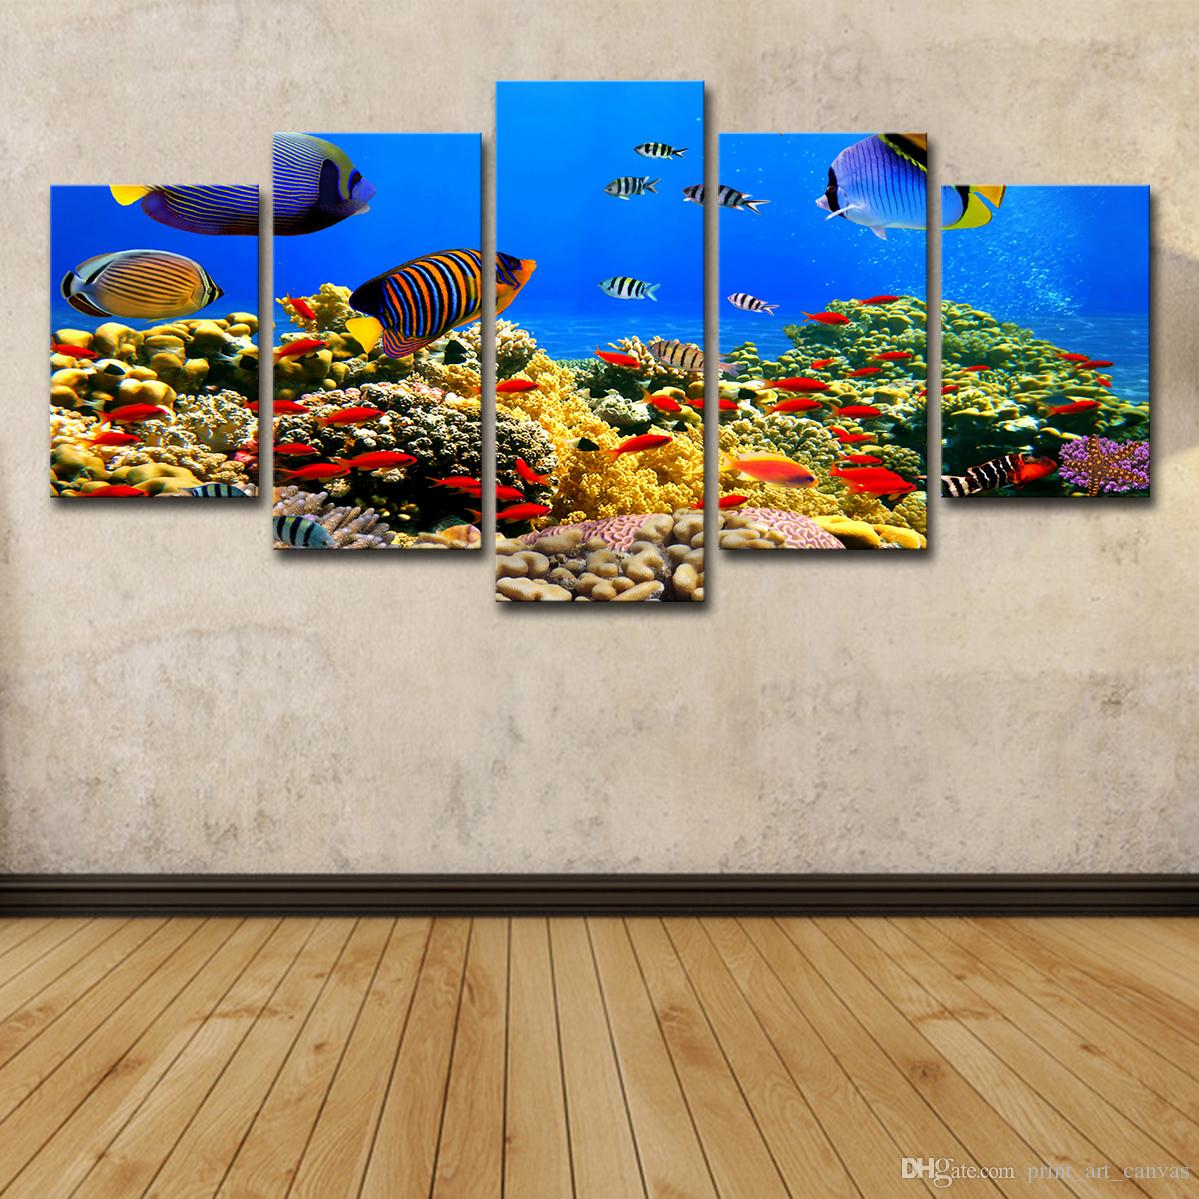 5 Piece HD Printed Marine Fish Coral Painting Canvas Print Room Decor Print Poster Picture Canvas Free Shipping